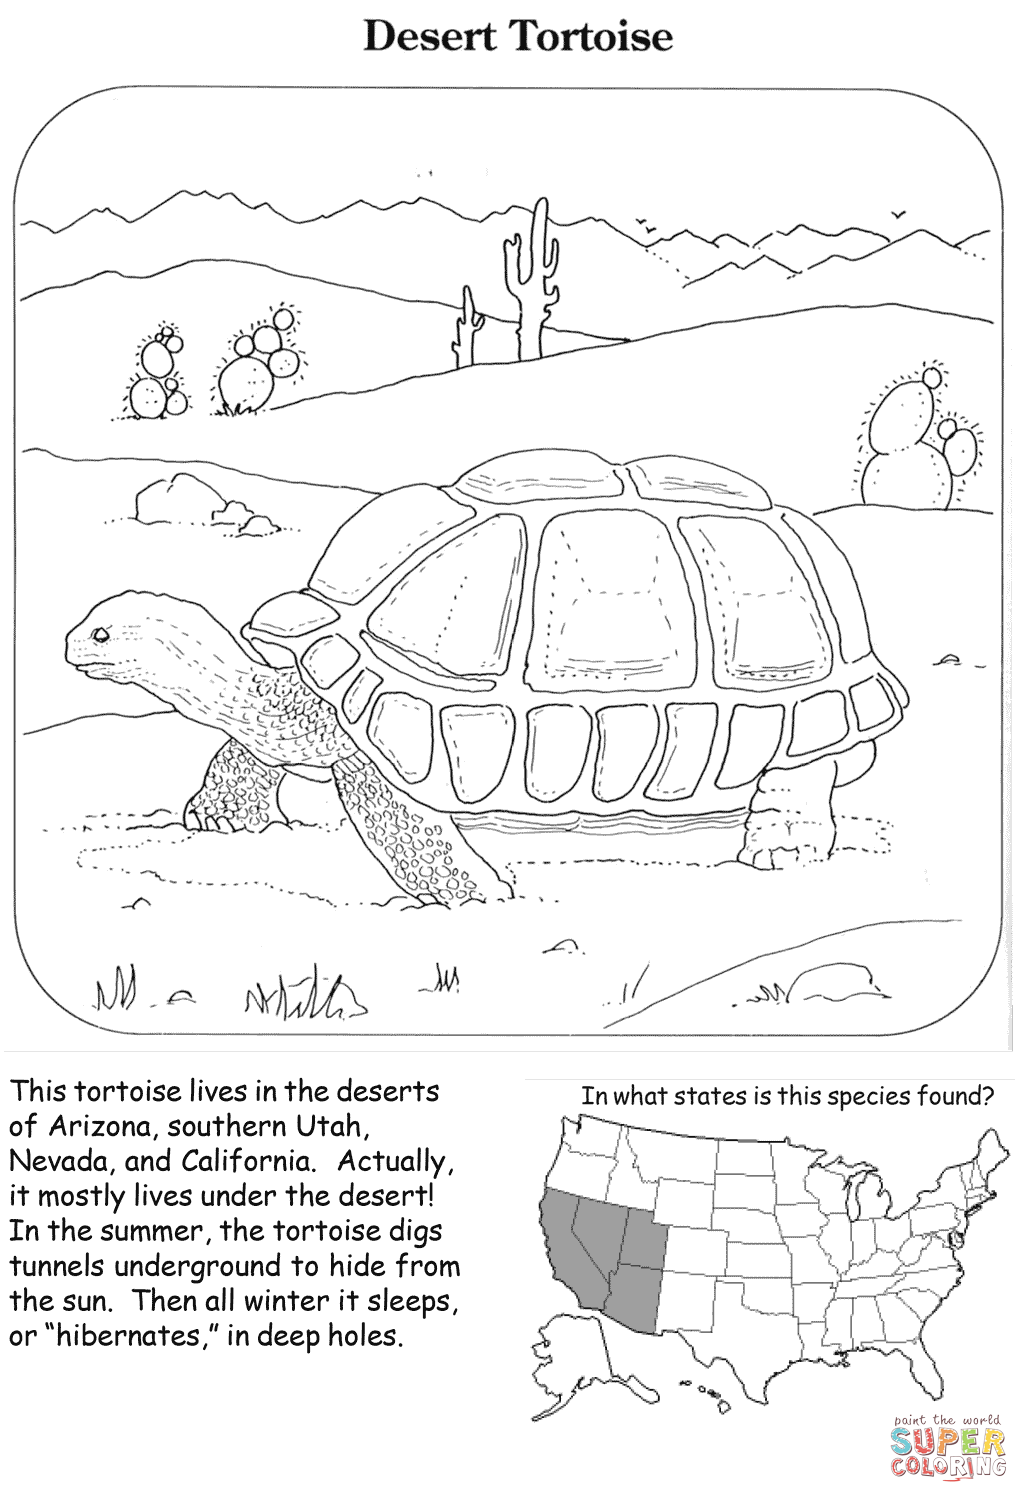 Desert Tortoise Coloring Page